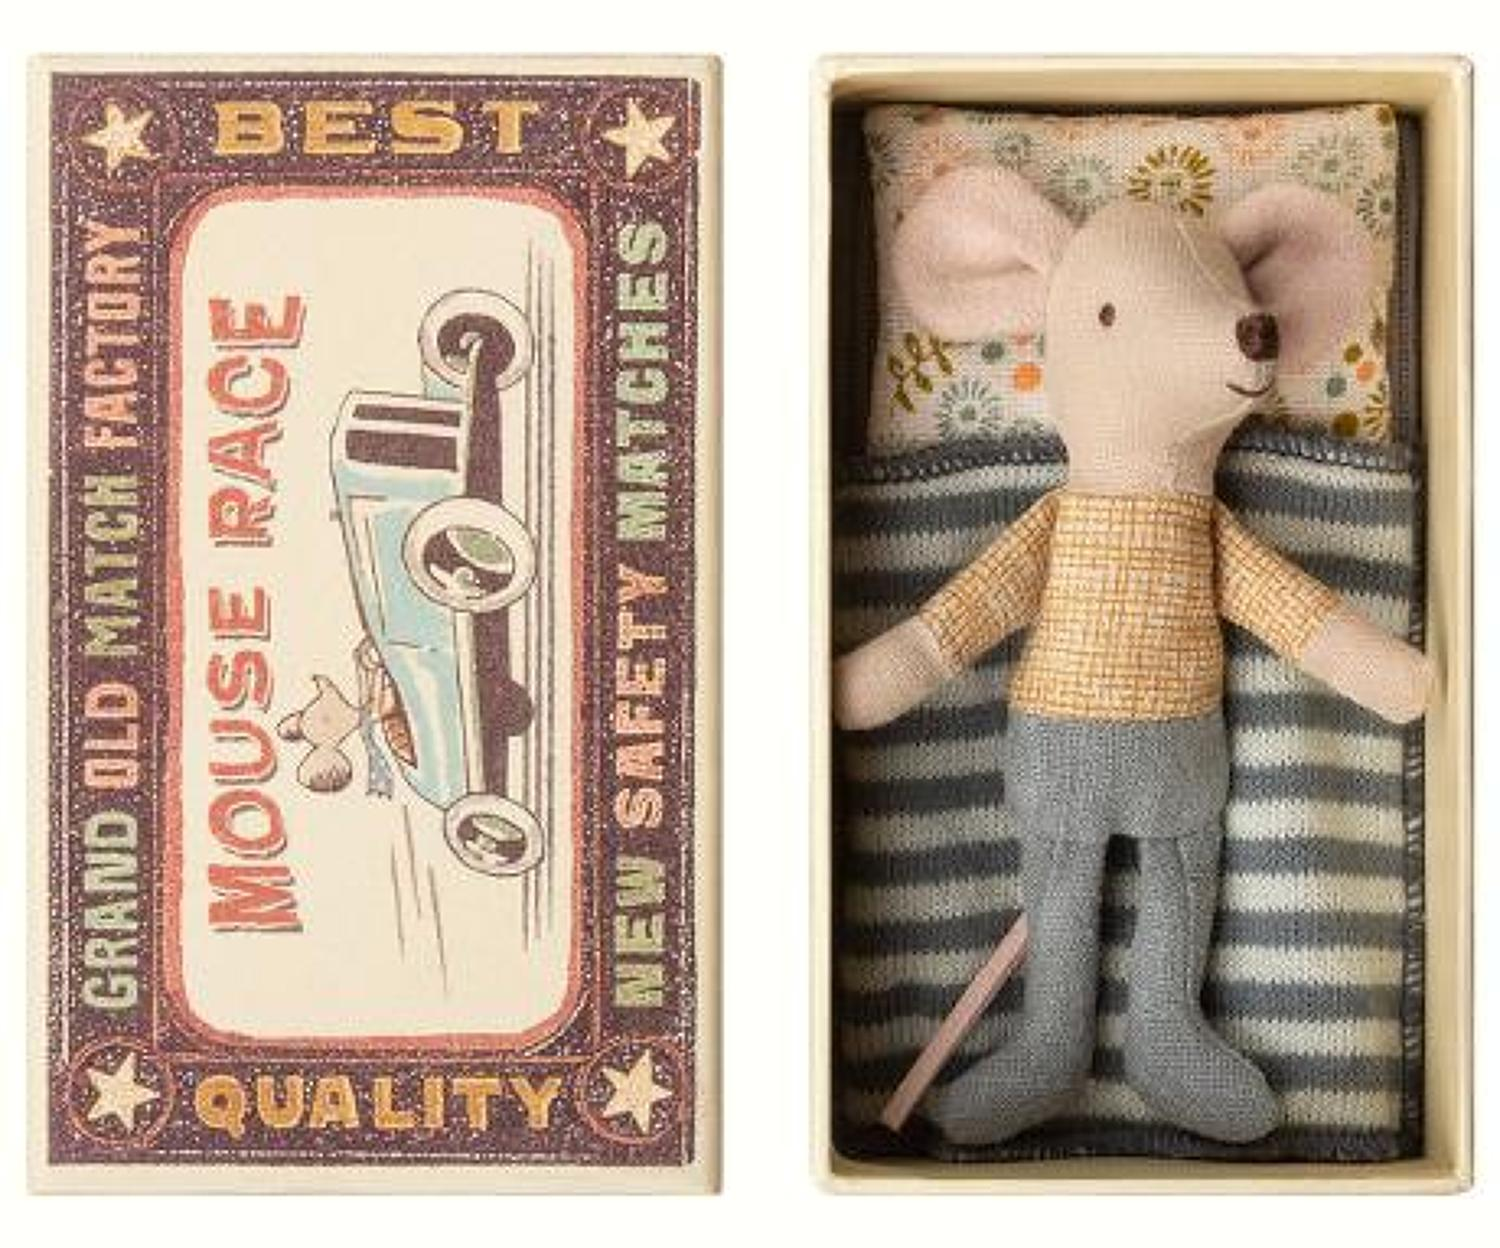 Maileg - Little brother (2) mouse in box